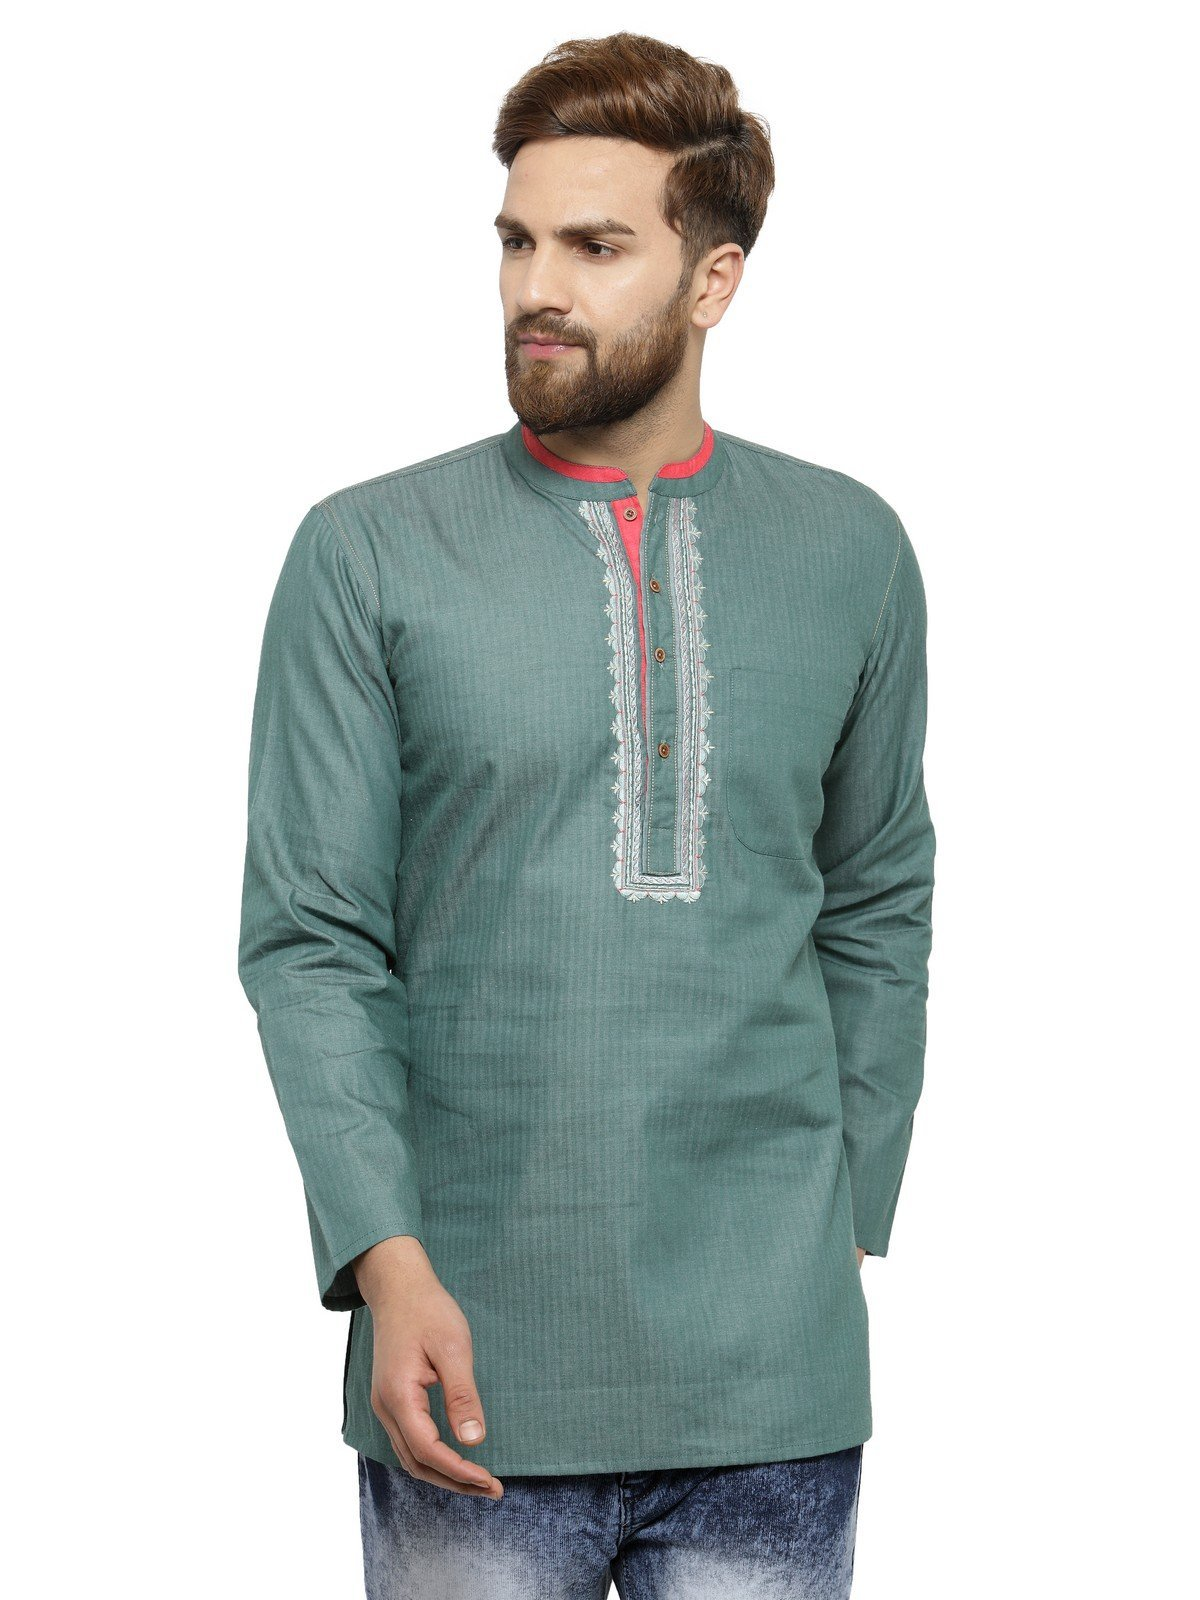 Apparel Men's Cotton Designer Short Kurta 42 Green by ARCH ELEMENTS (Image #1)